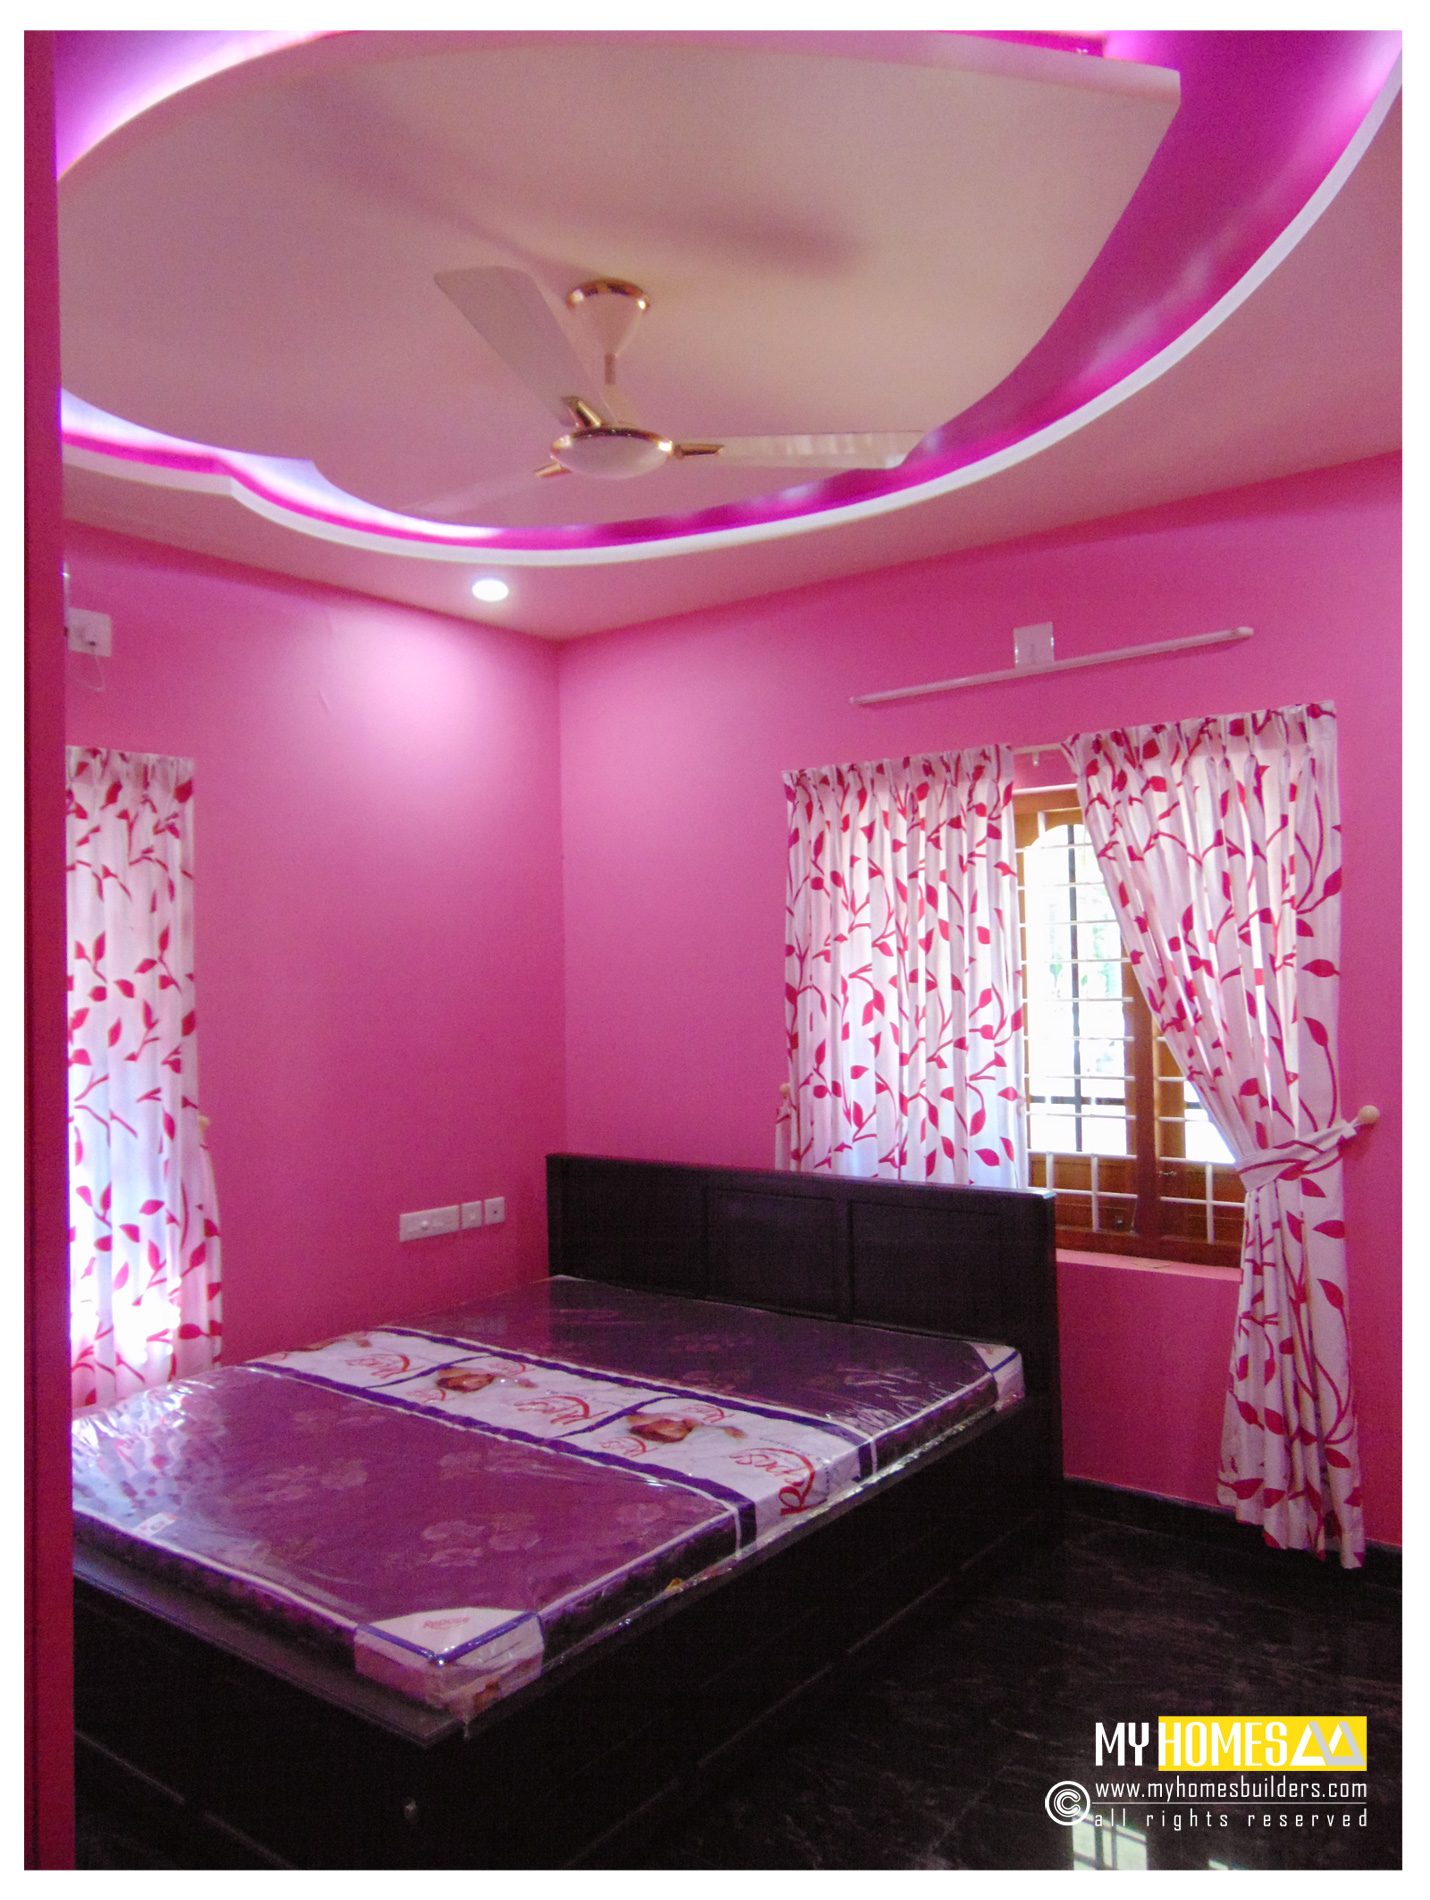 Simple style kerala bedroom designs ideas for home interior for House bedroom ideas